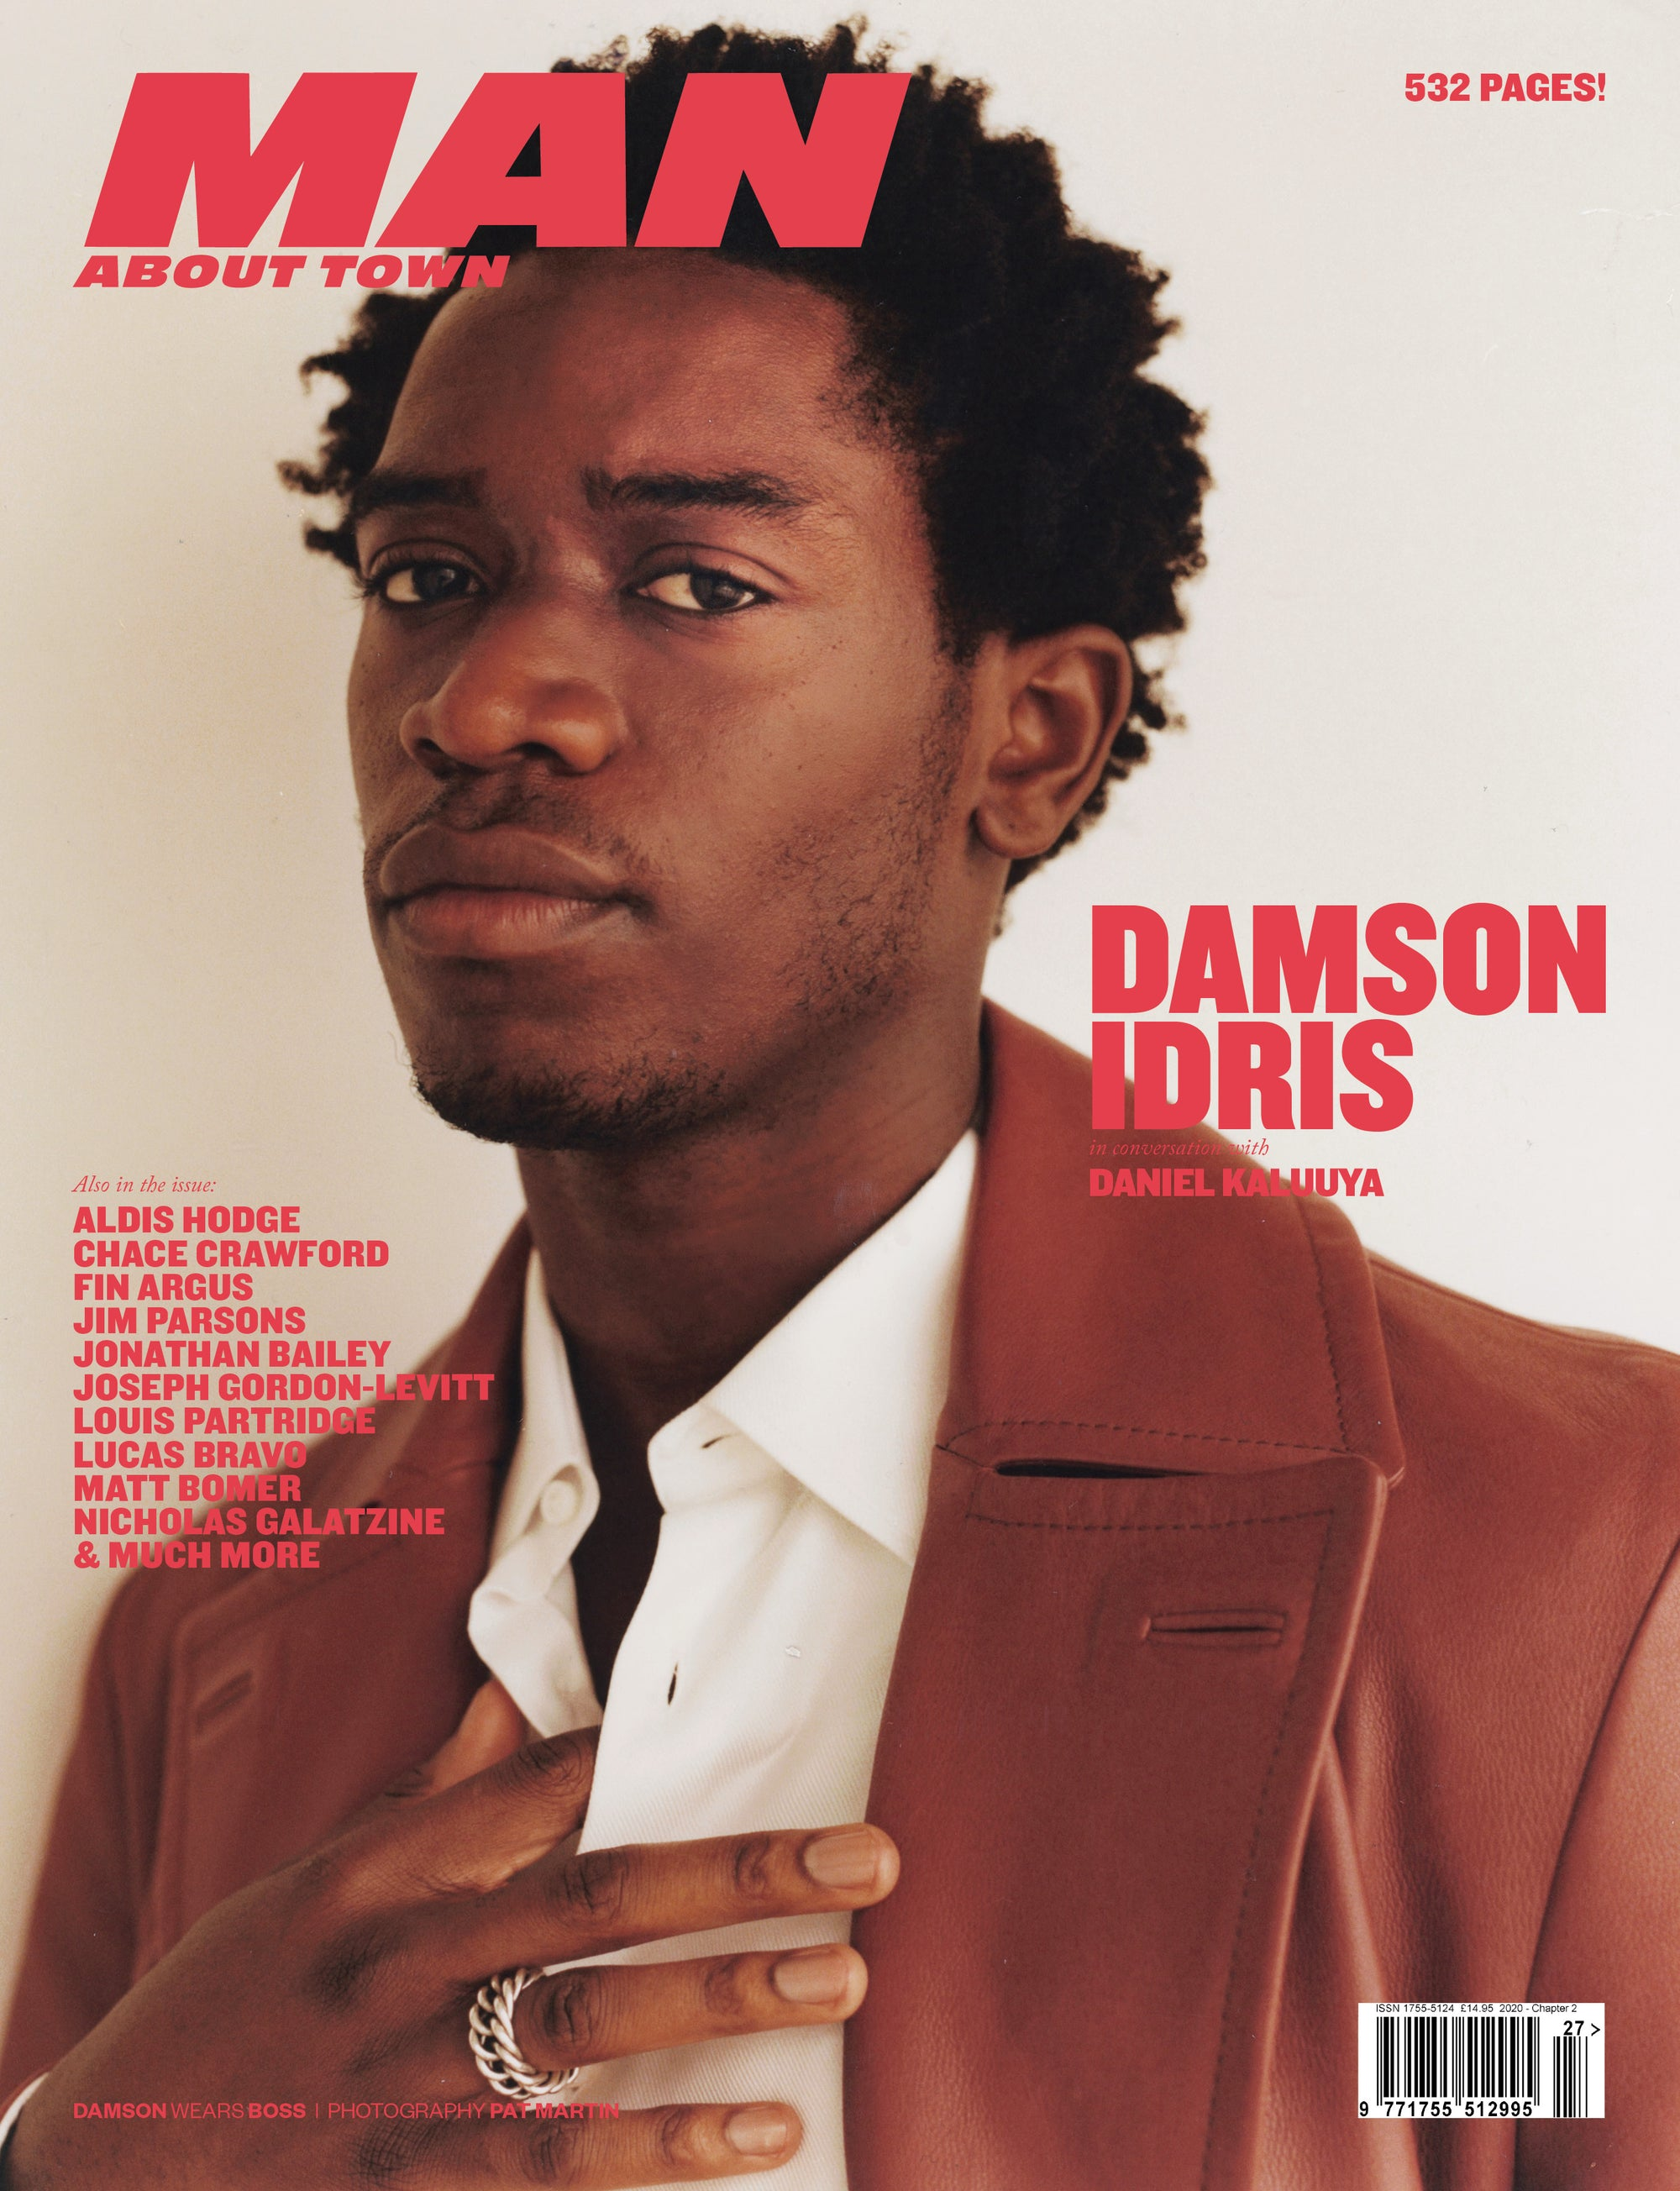 DAMSON IDRIS cover Man About Town 2020, Chapter II